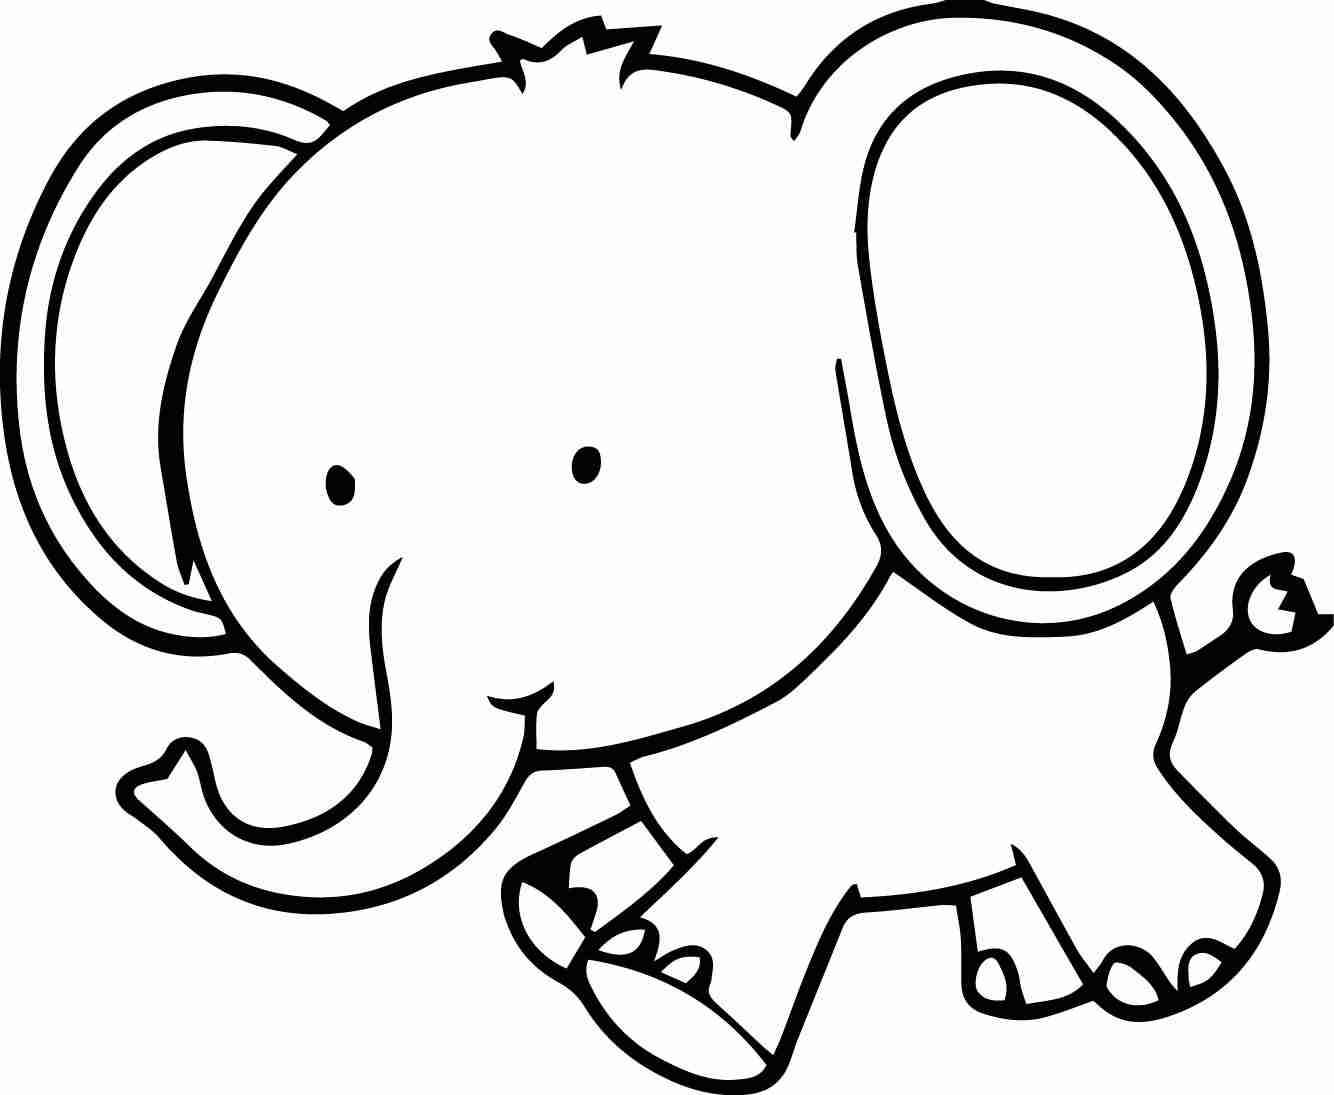 1334x1095 Free Printable Elephant Coloring Pages For Kids Inside Olegratiy